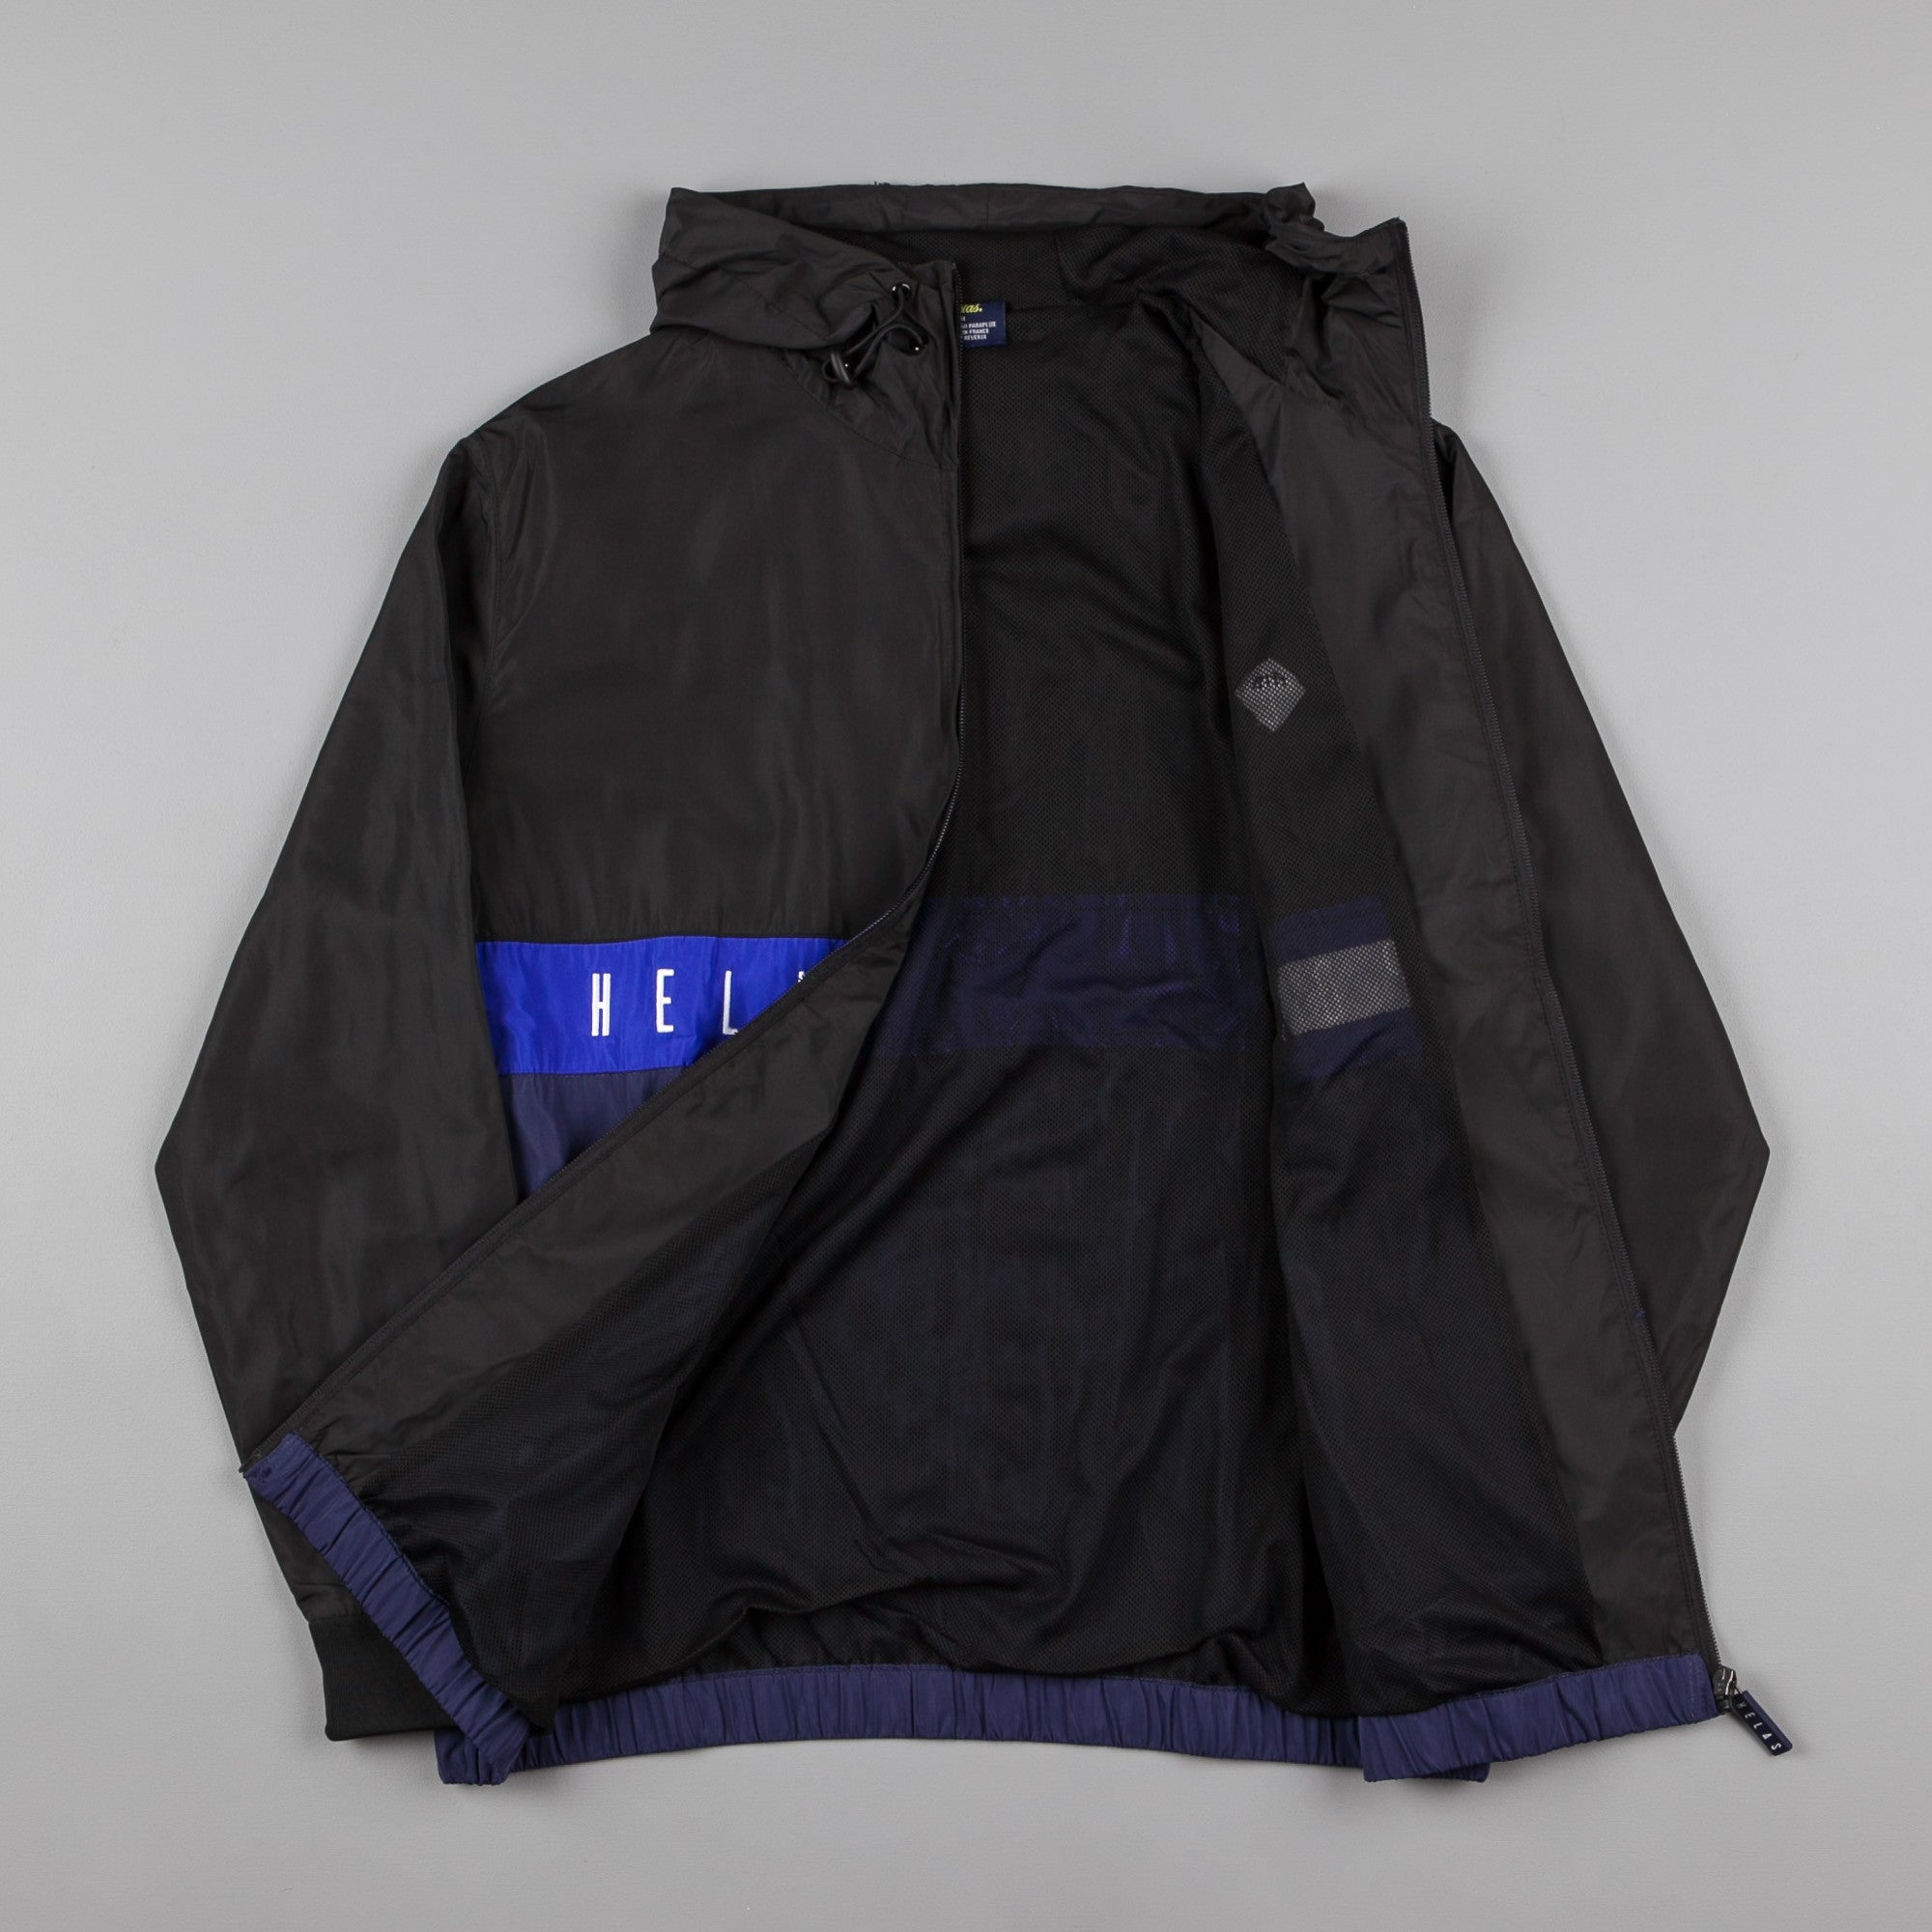 Helas Sport Hooded Tracksuit Jacket - Black / Blue / Navy